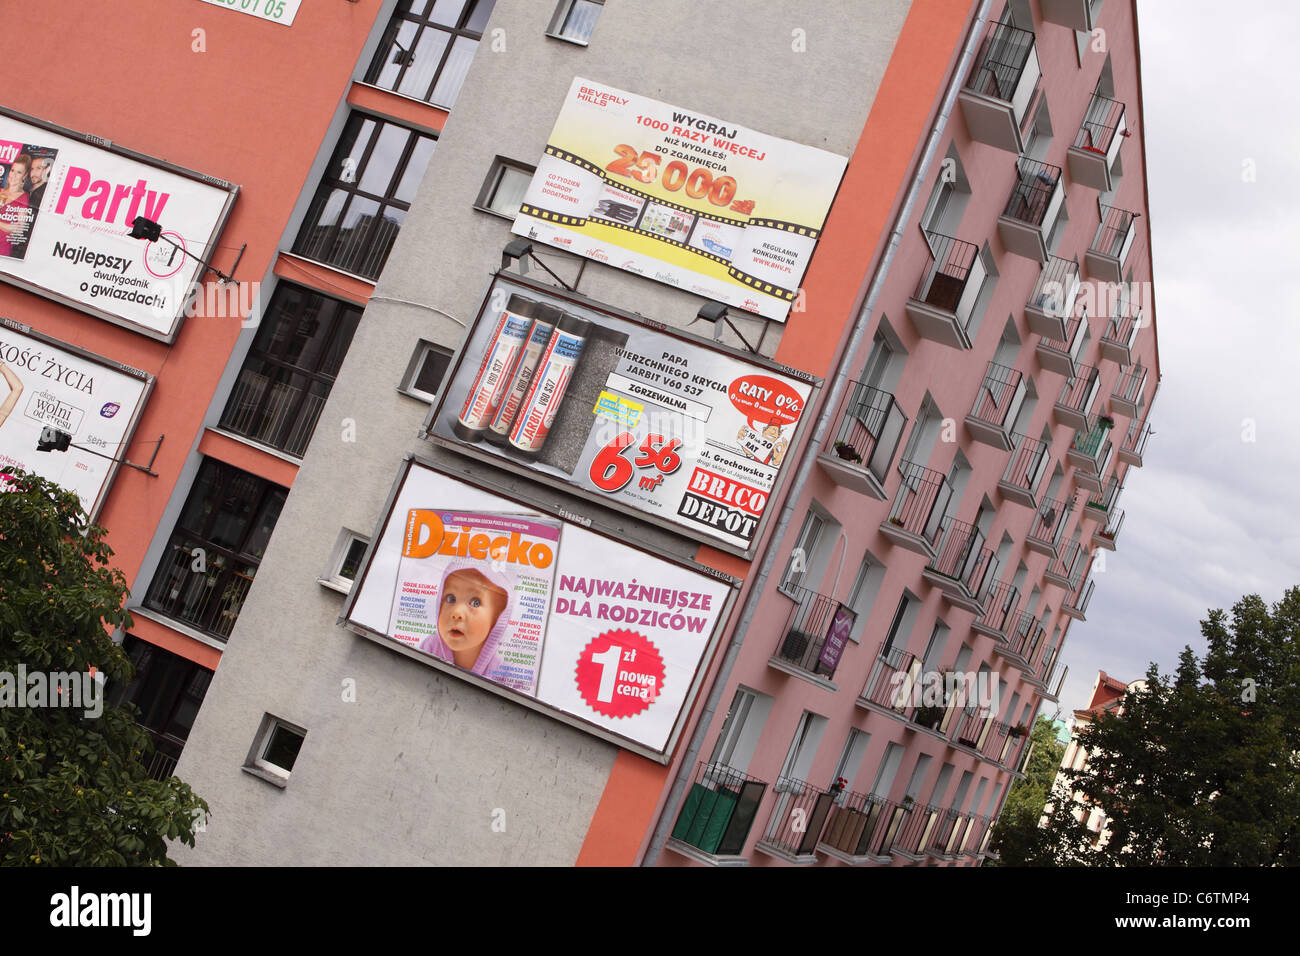 Warsaw Poland large billboard adverts advertising on the side of a block of flats - Stock Image